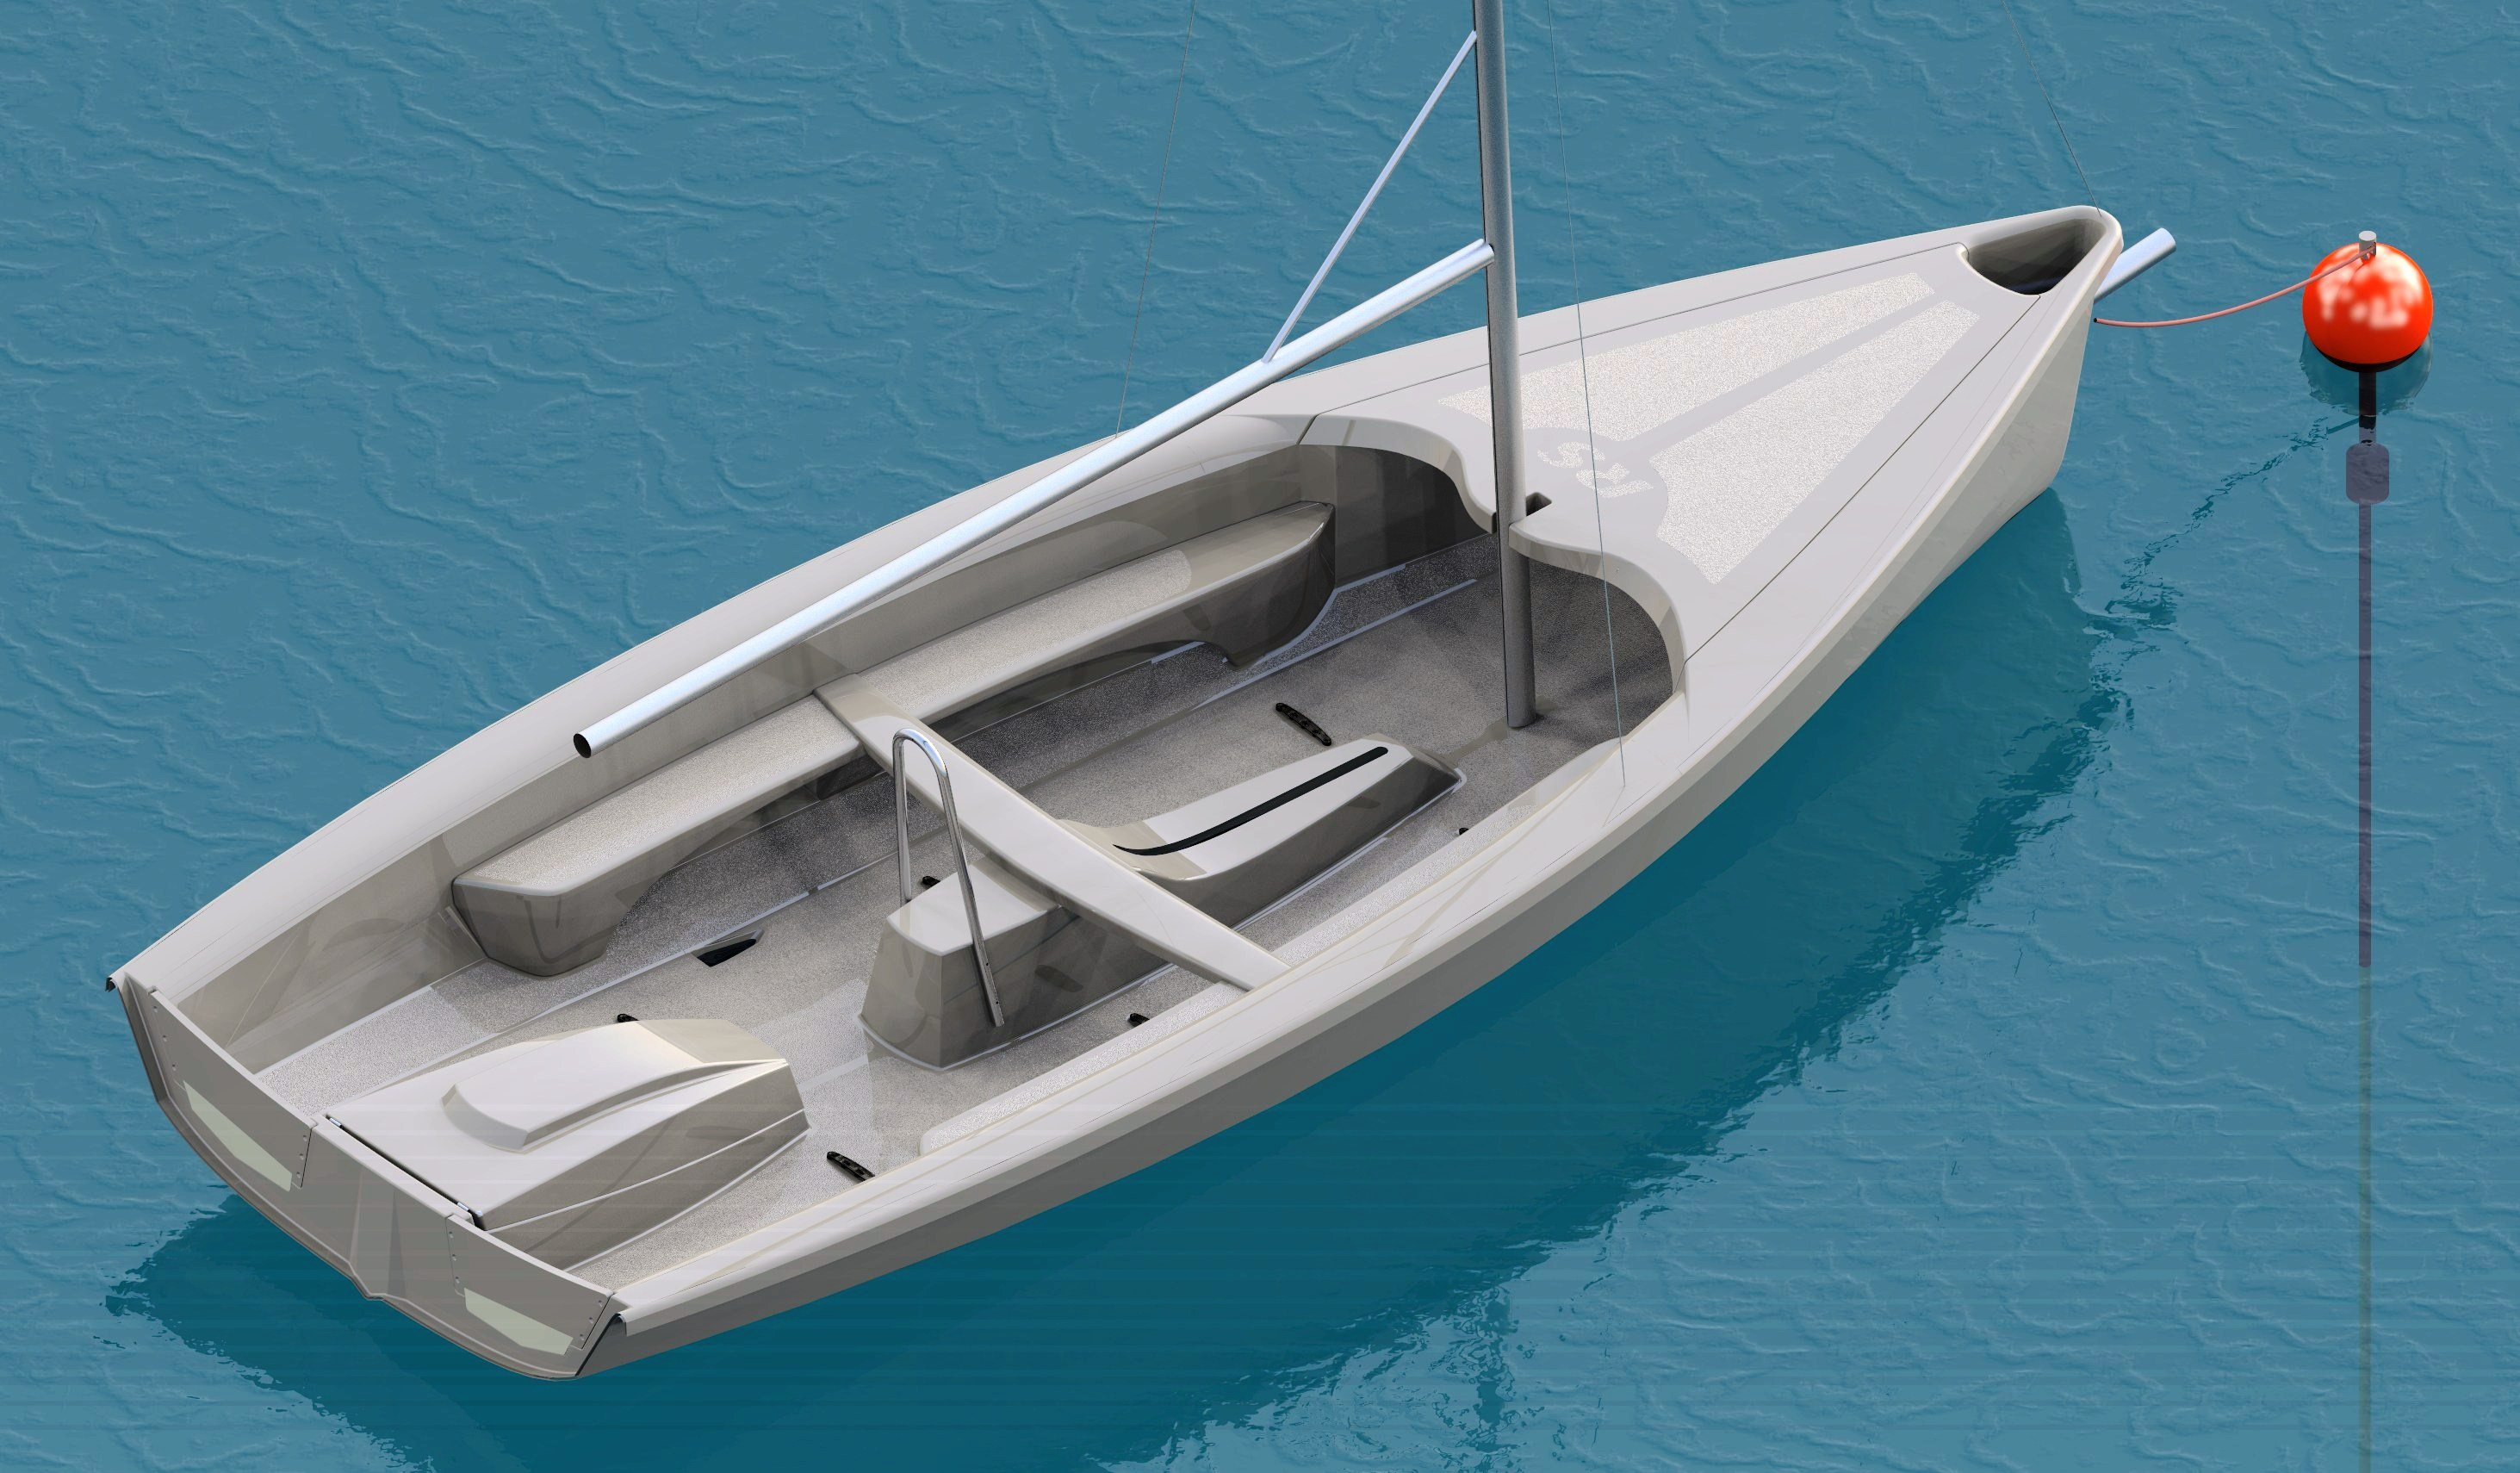 Timotty: Easy to Build a sailing dinghy